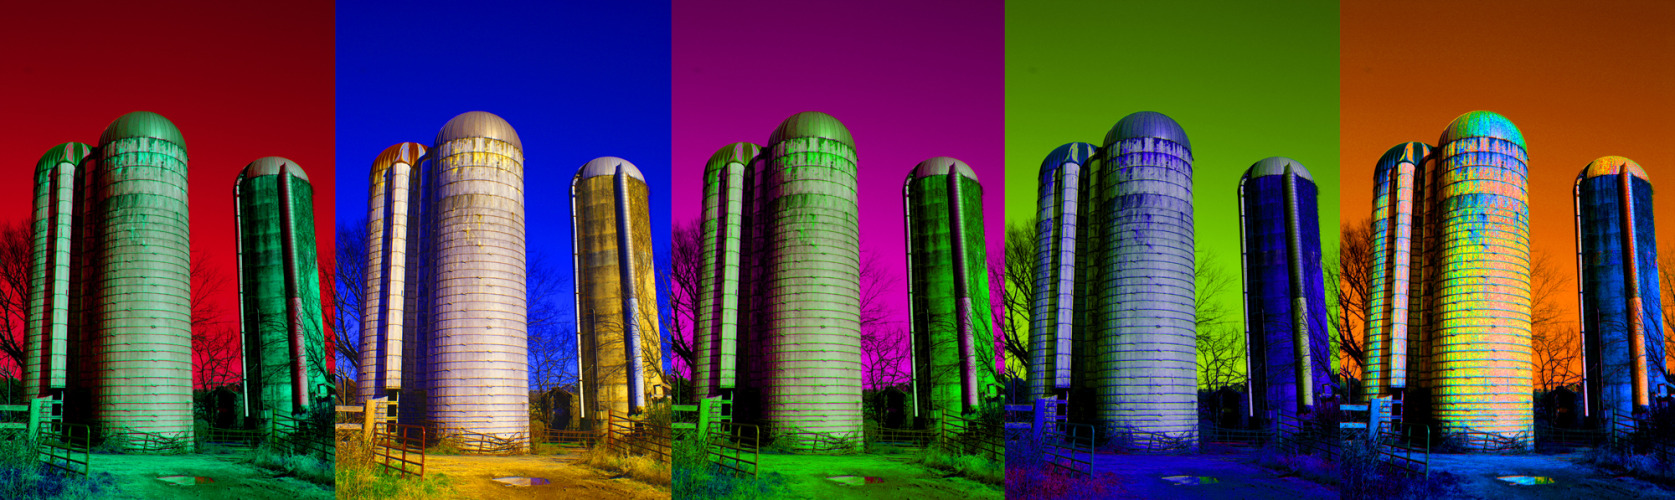 from an old photo I took of grain silos near my parents house in Chapel Hill